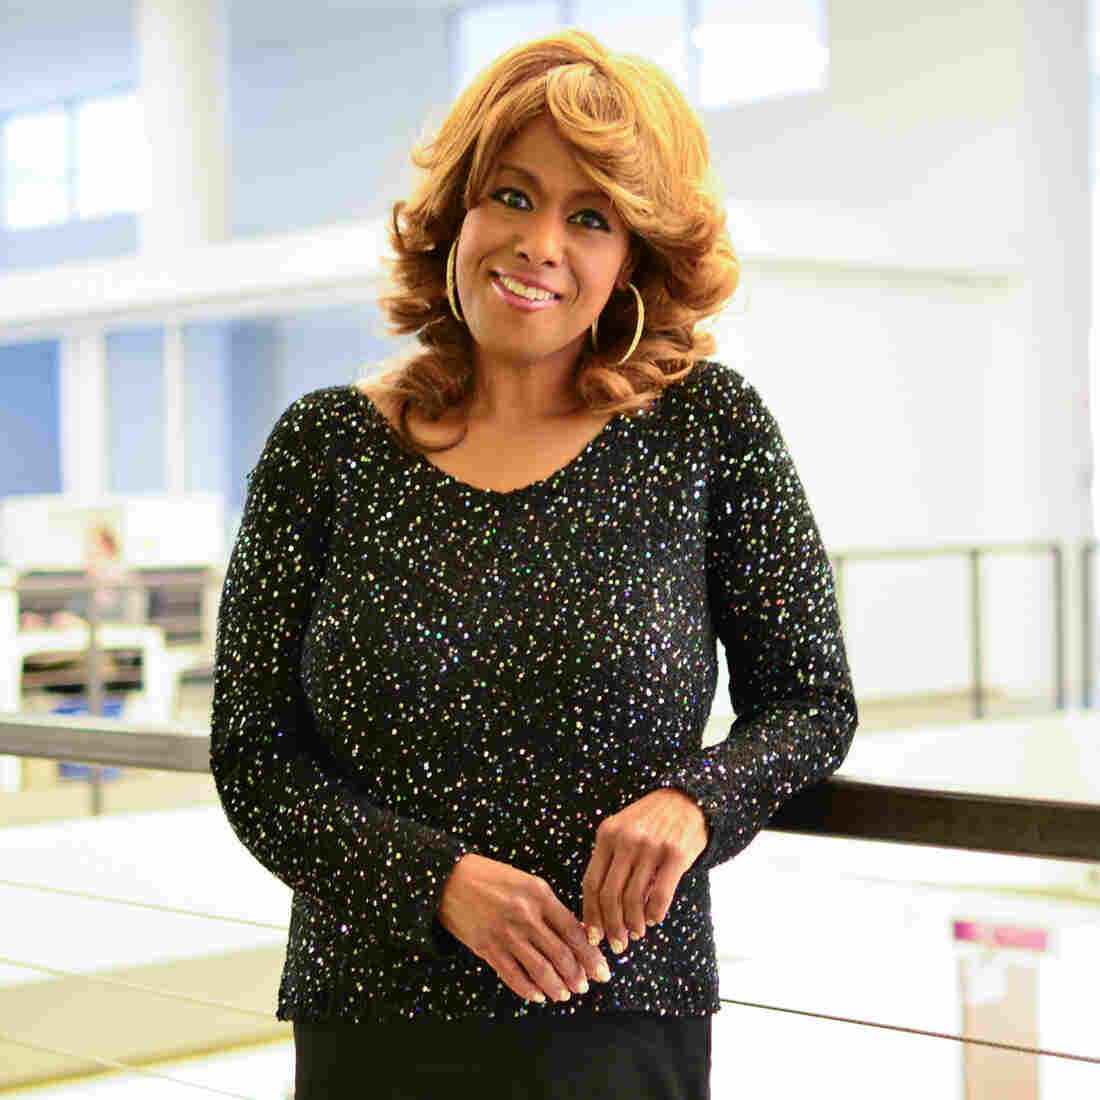 Original 'Dreamgirl' Jennifer Holliday: 'I'm Not Going Nowhere'